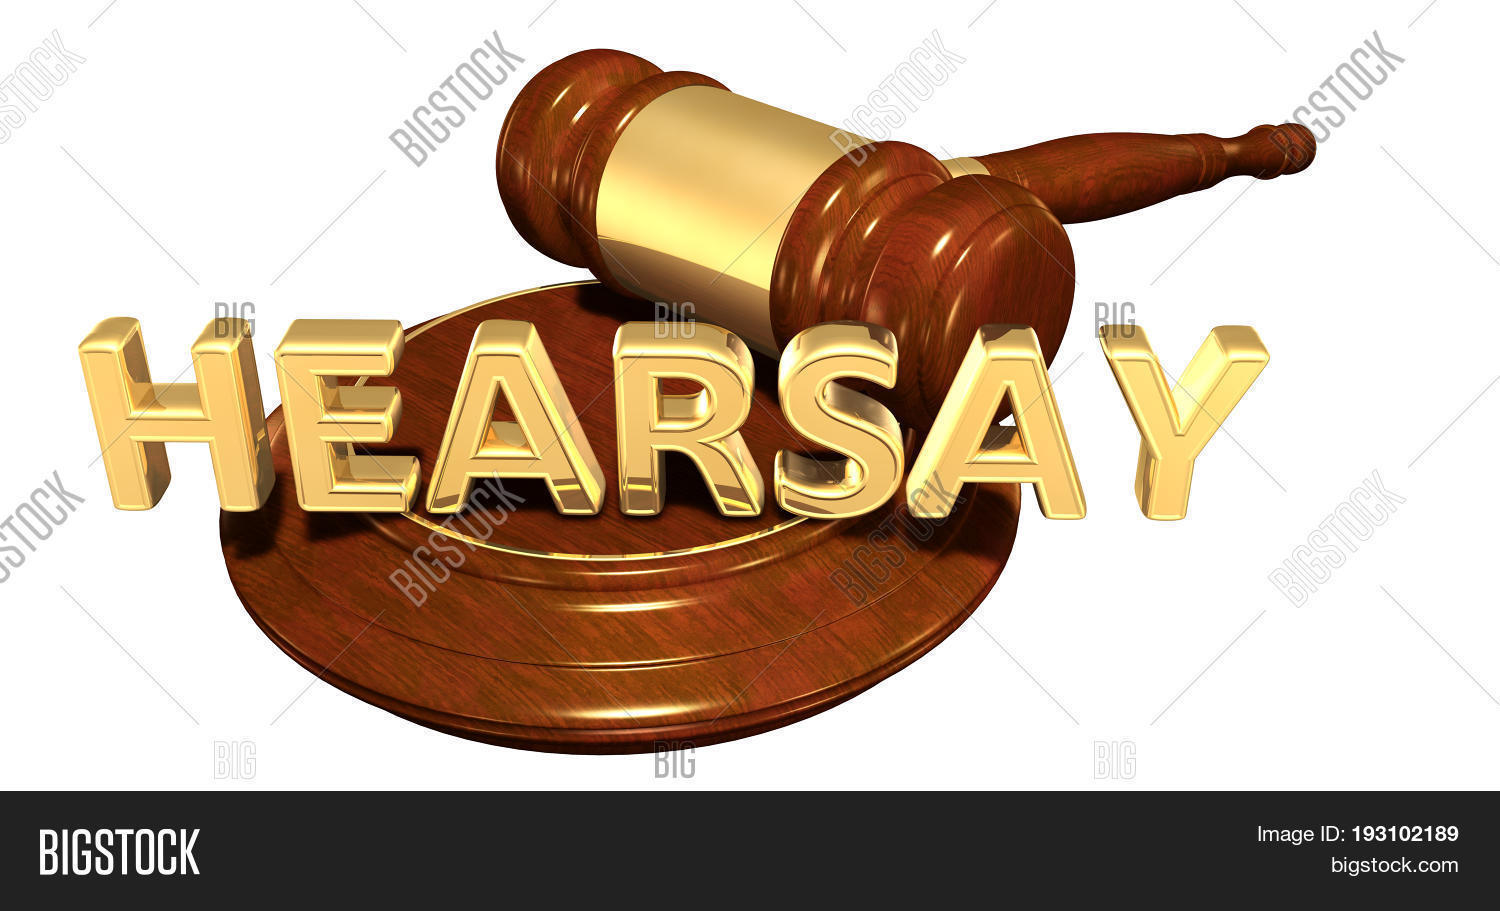 Hearsay Law Concept 3D Image & Photo (Free Trial) | Bigstock